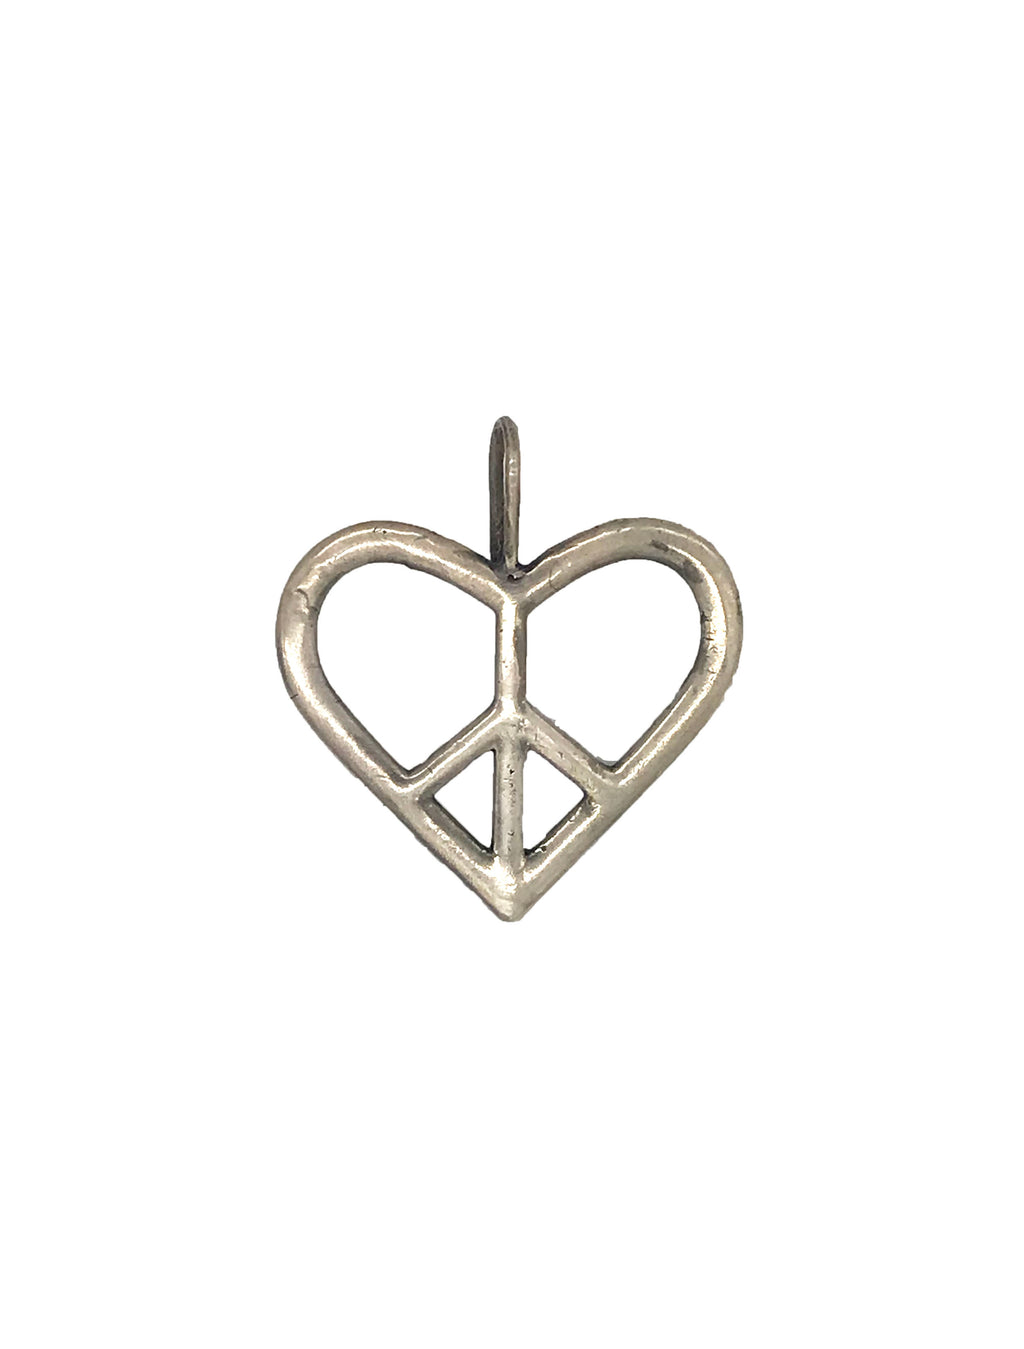 Heart Shaped Peace Sign Pendant